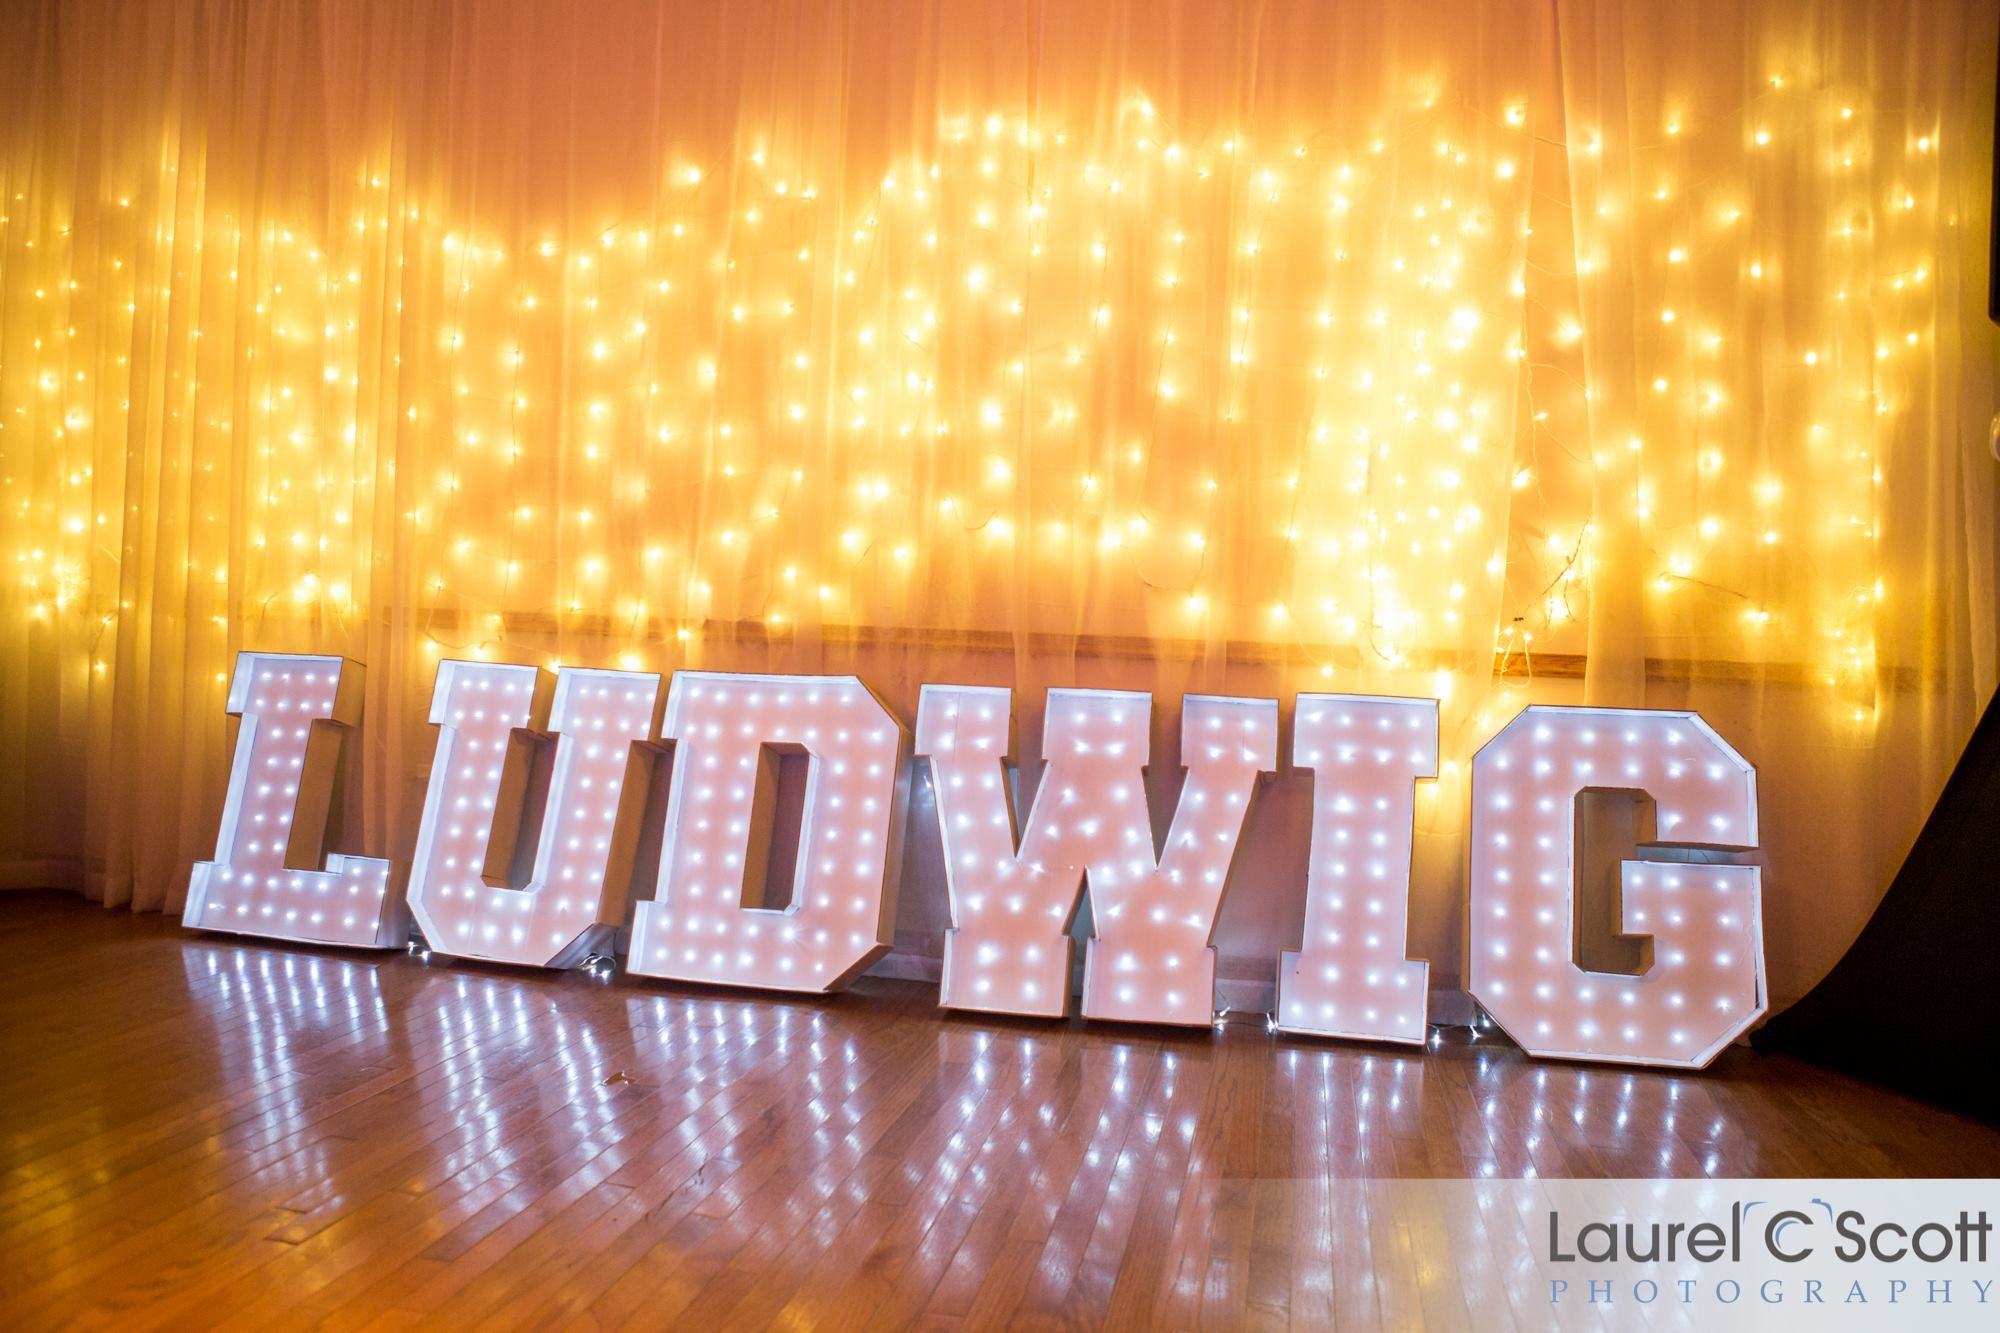 Last name light up letters Made of cardboard hot glue String